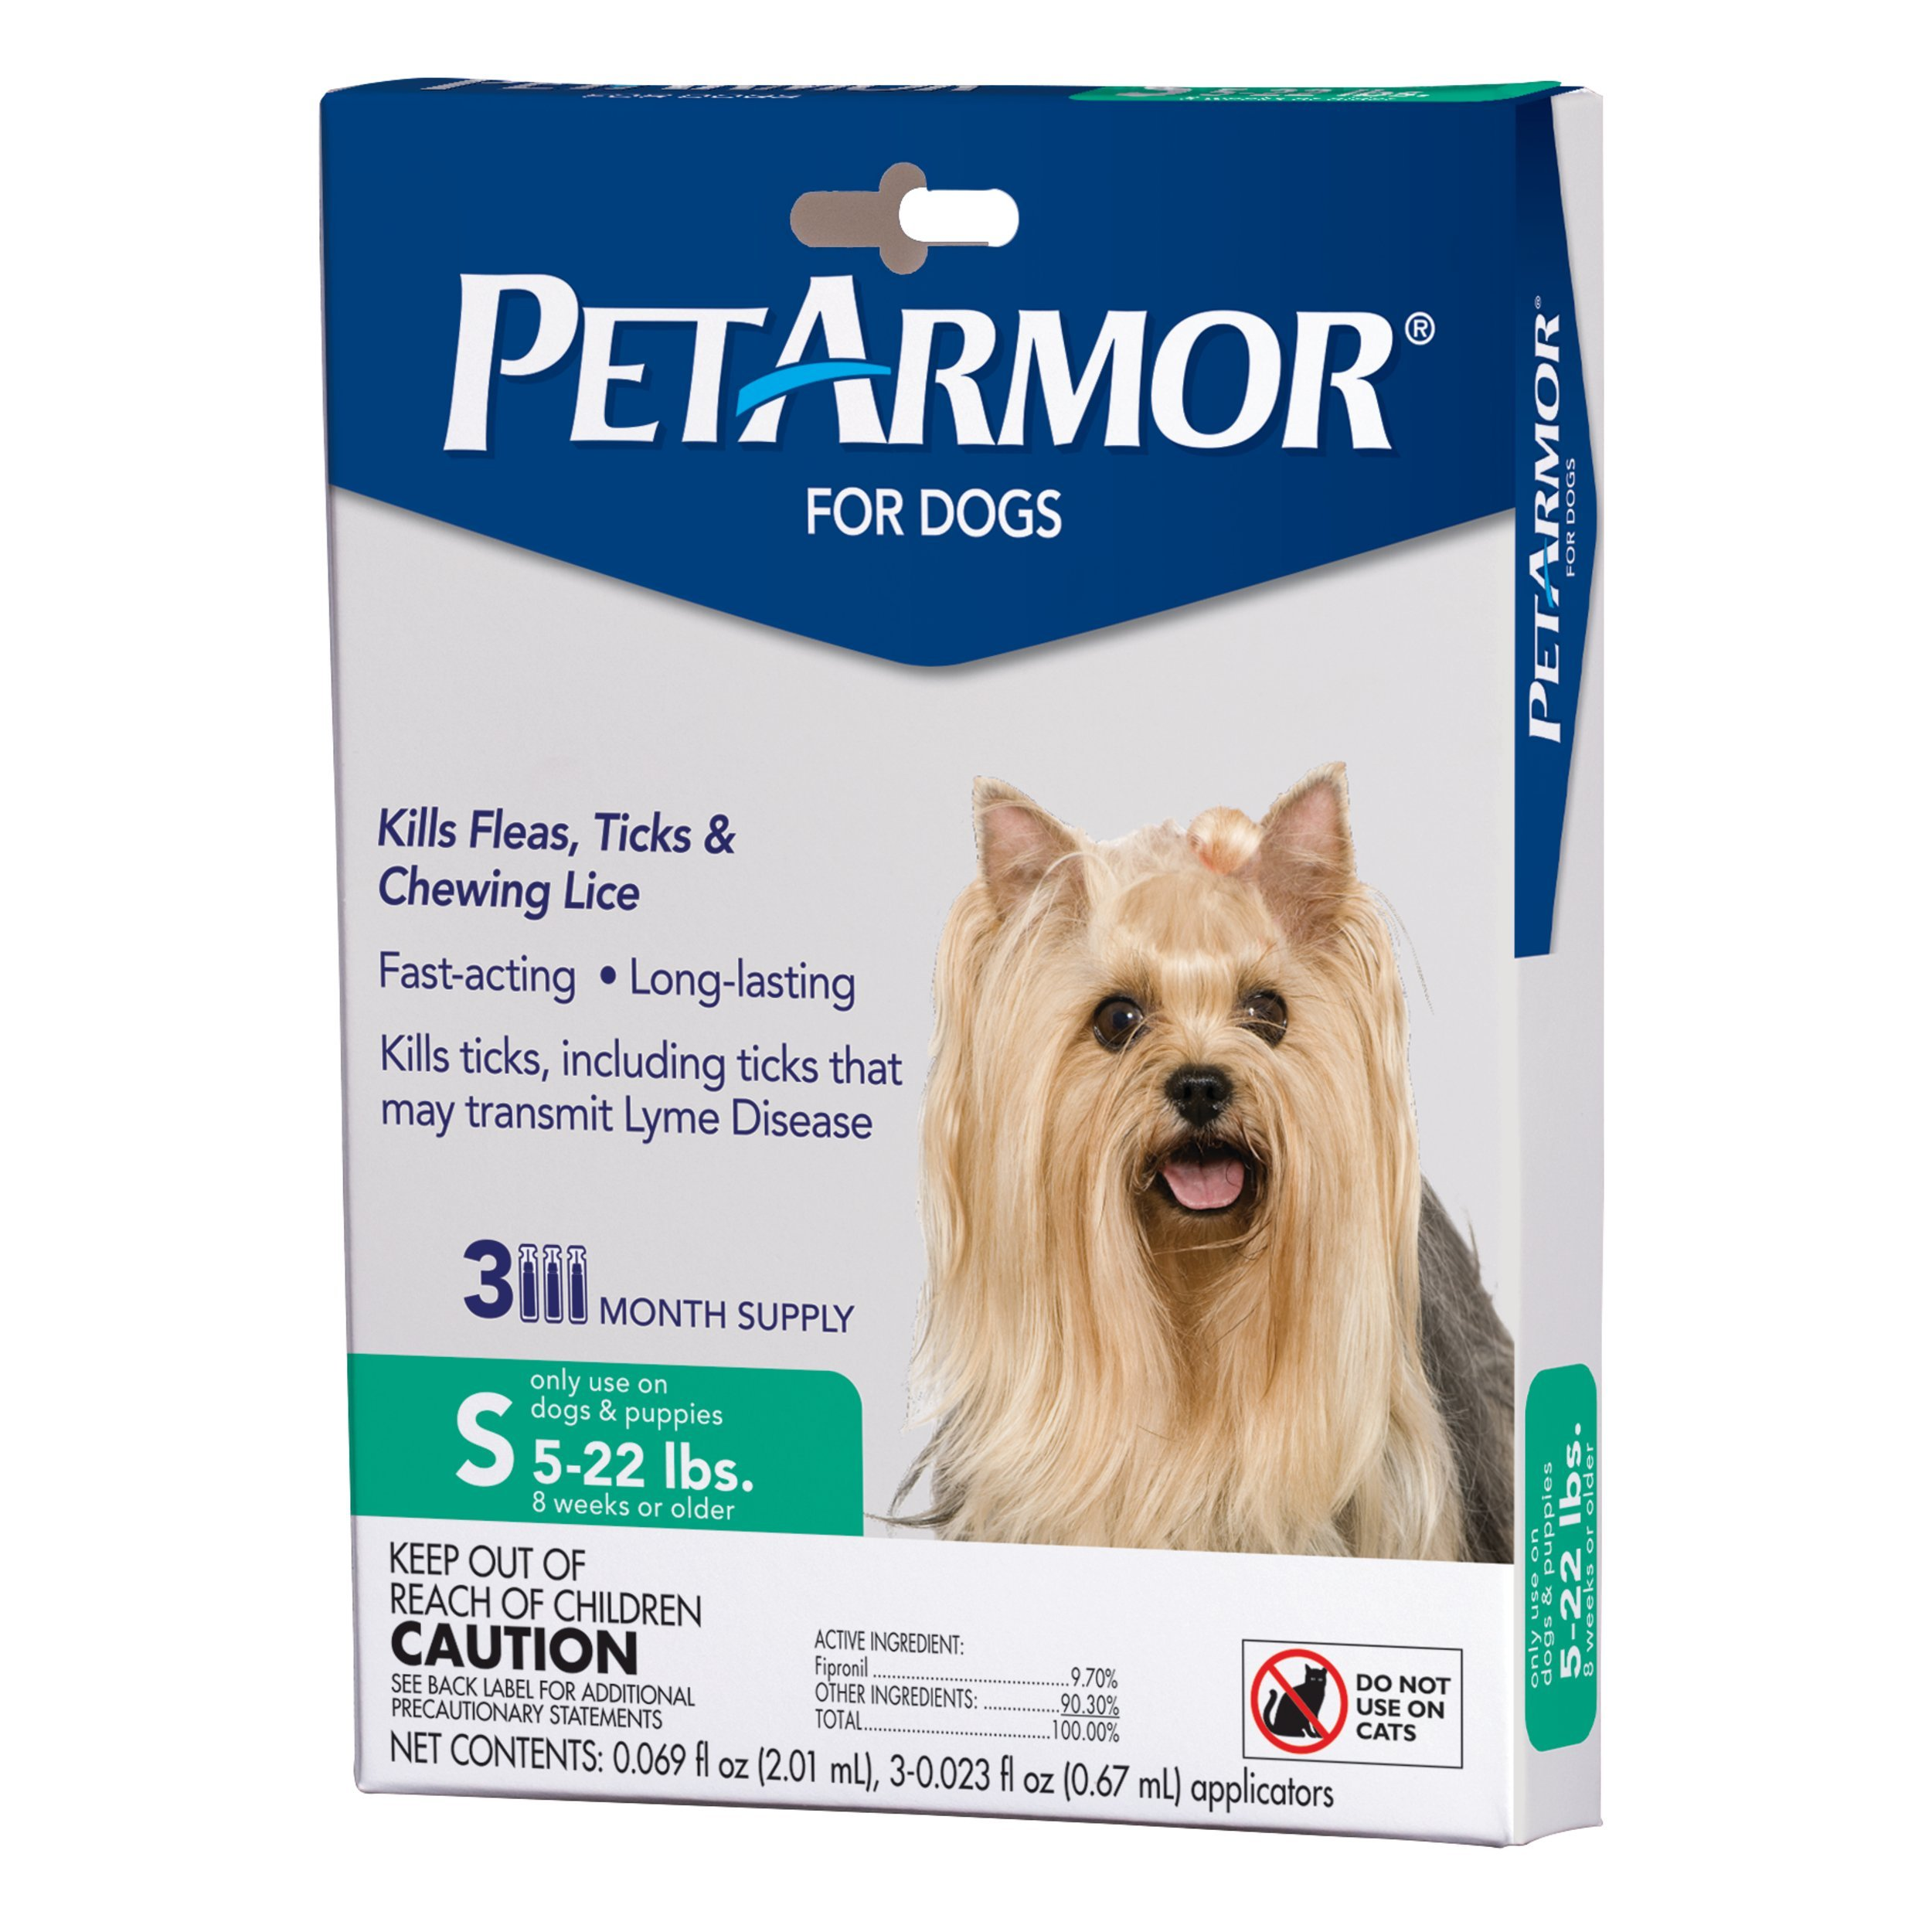 PETARMOR Squeeze on Dog Flea and Tick Repellent, 3 Month Pack for 5 to 22-Pound